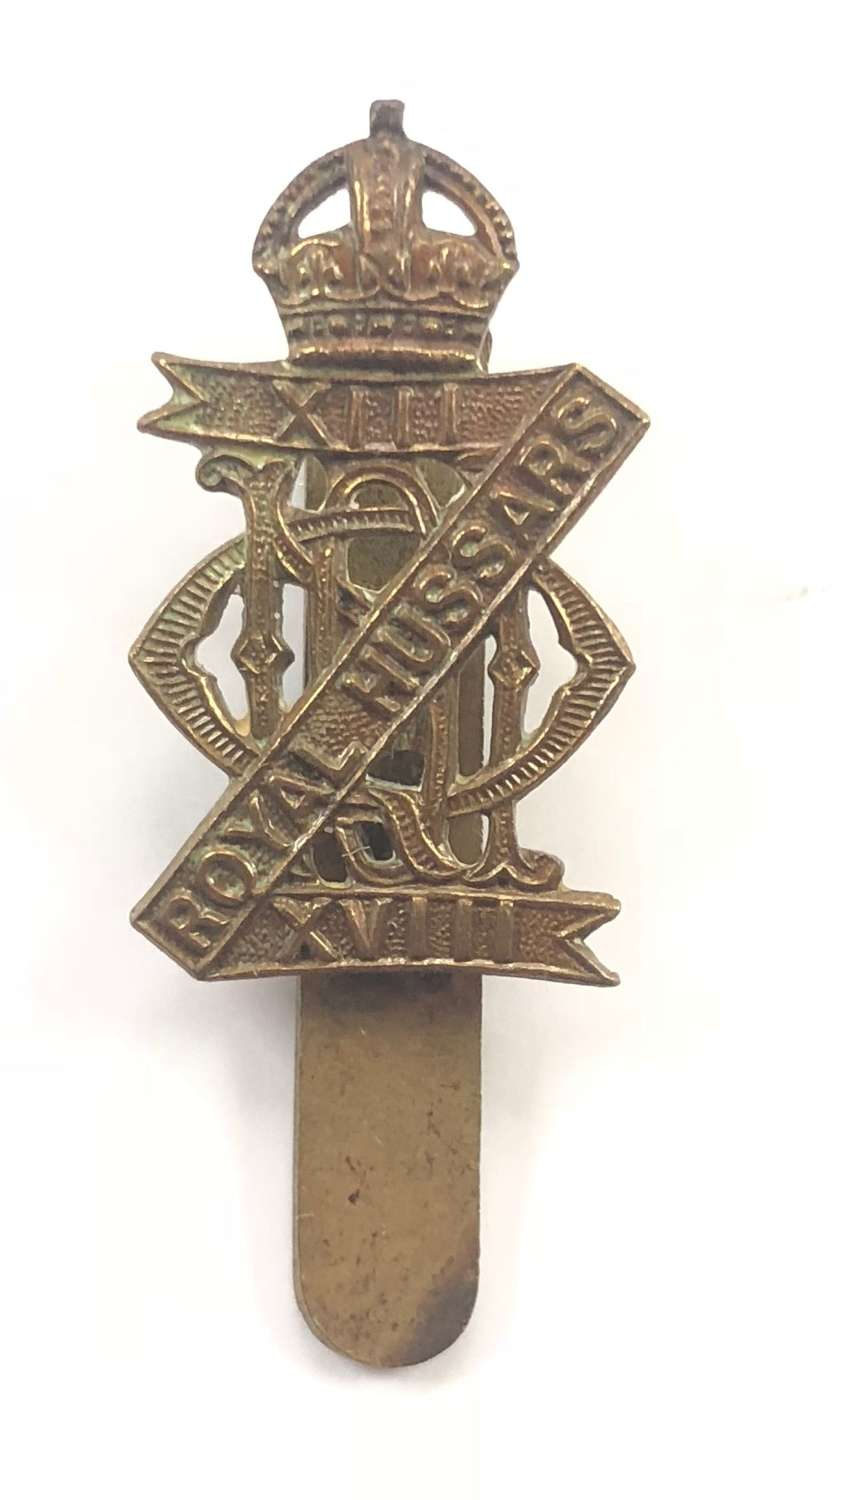 WW2 13th / 18th Royal Hussars Cavalry Cap Badge.